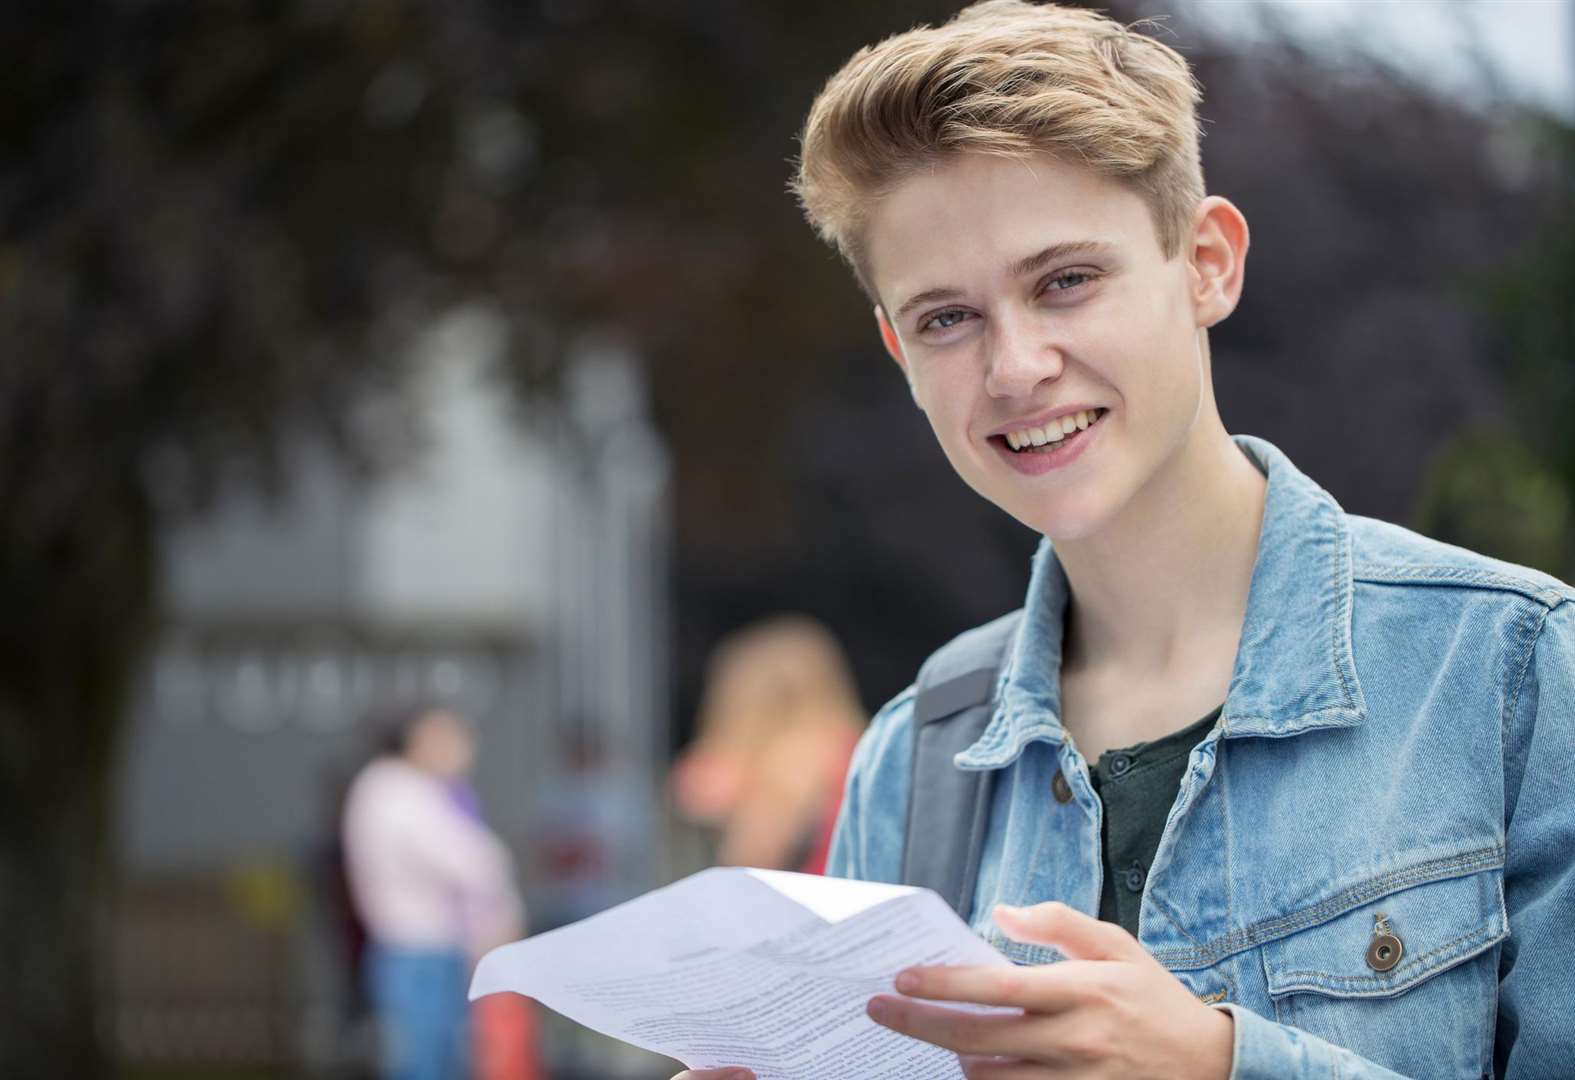 Thousands await A level results